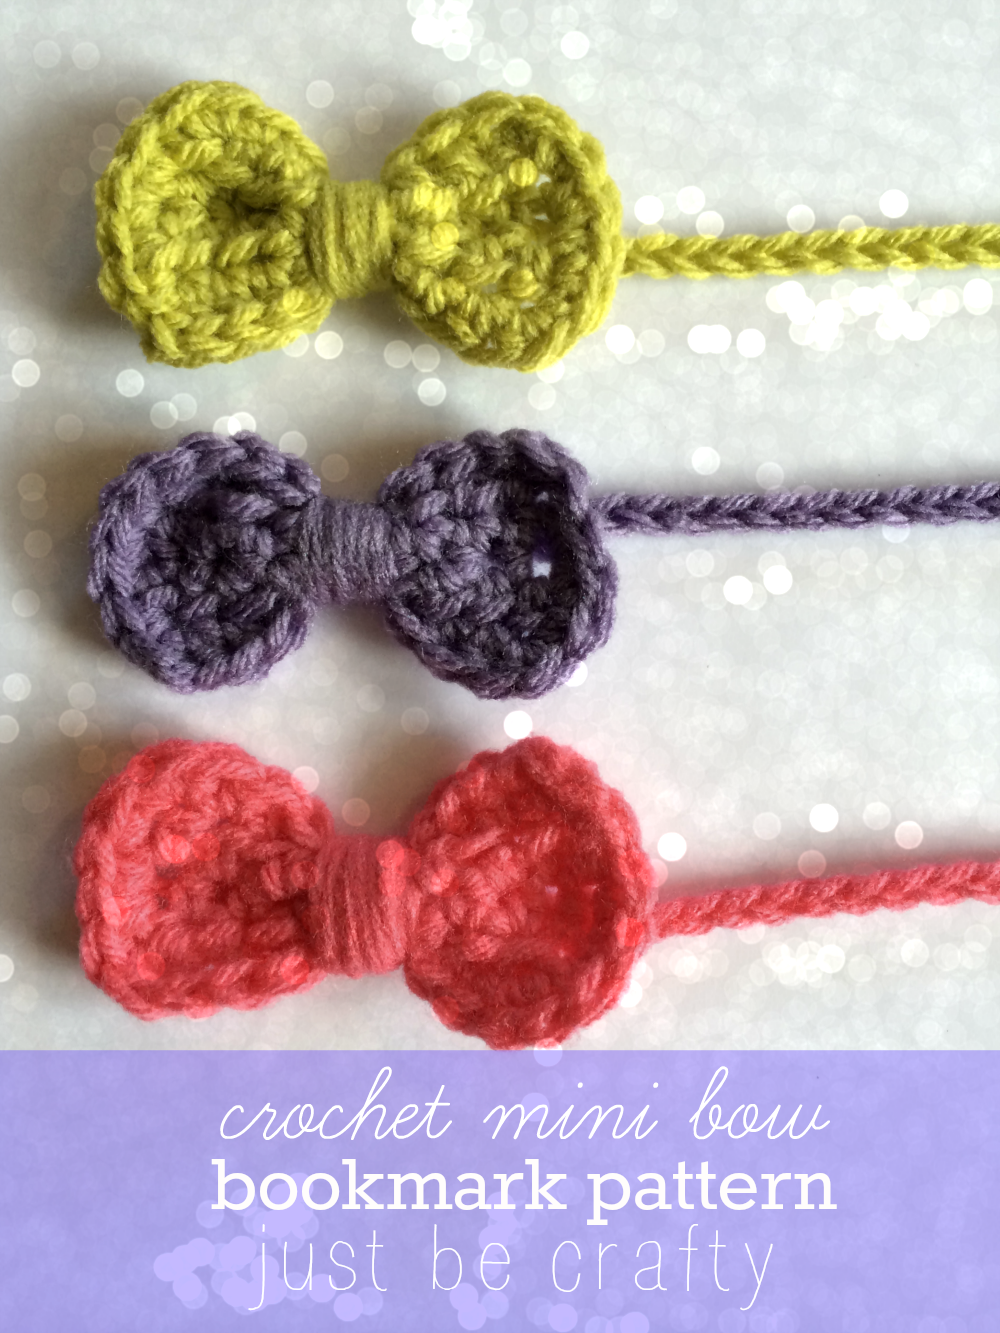 Mini bow bookmark a free crochet pattern tutorial free a free crochet pattern and tutorial just be crafty baditri Image collections